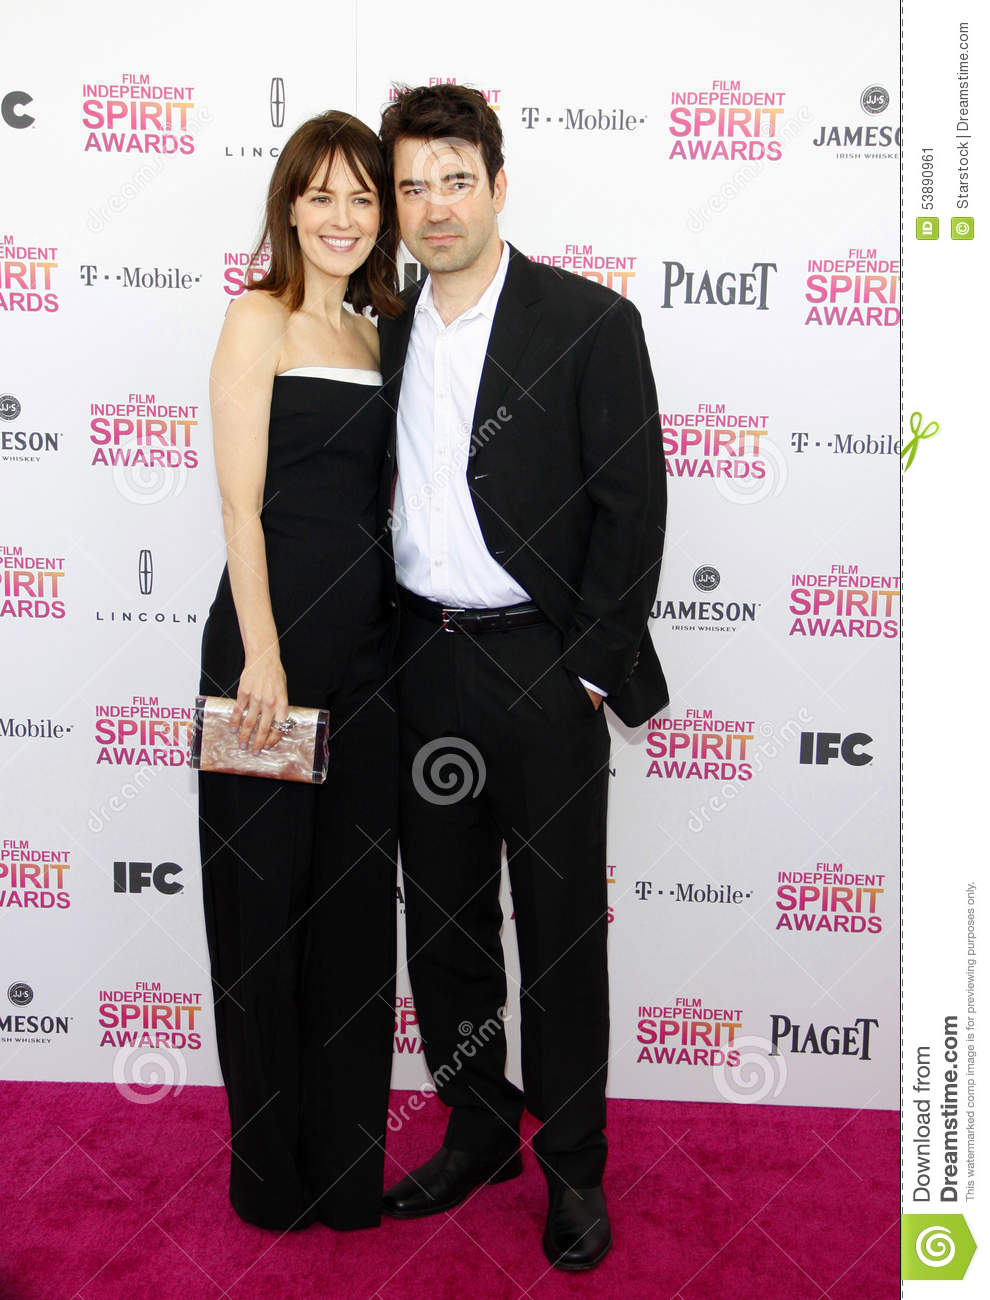 Rosemarie DeWitt y Ron Livingston